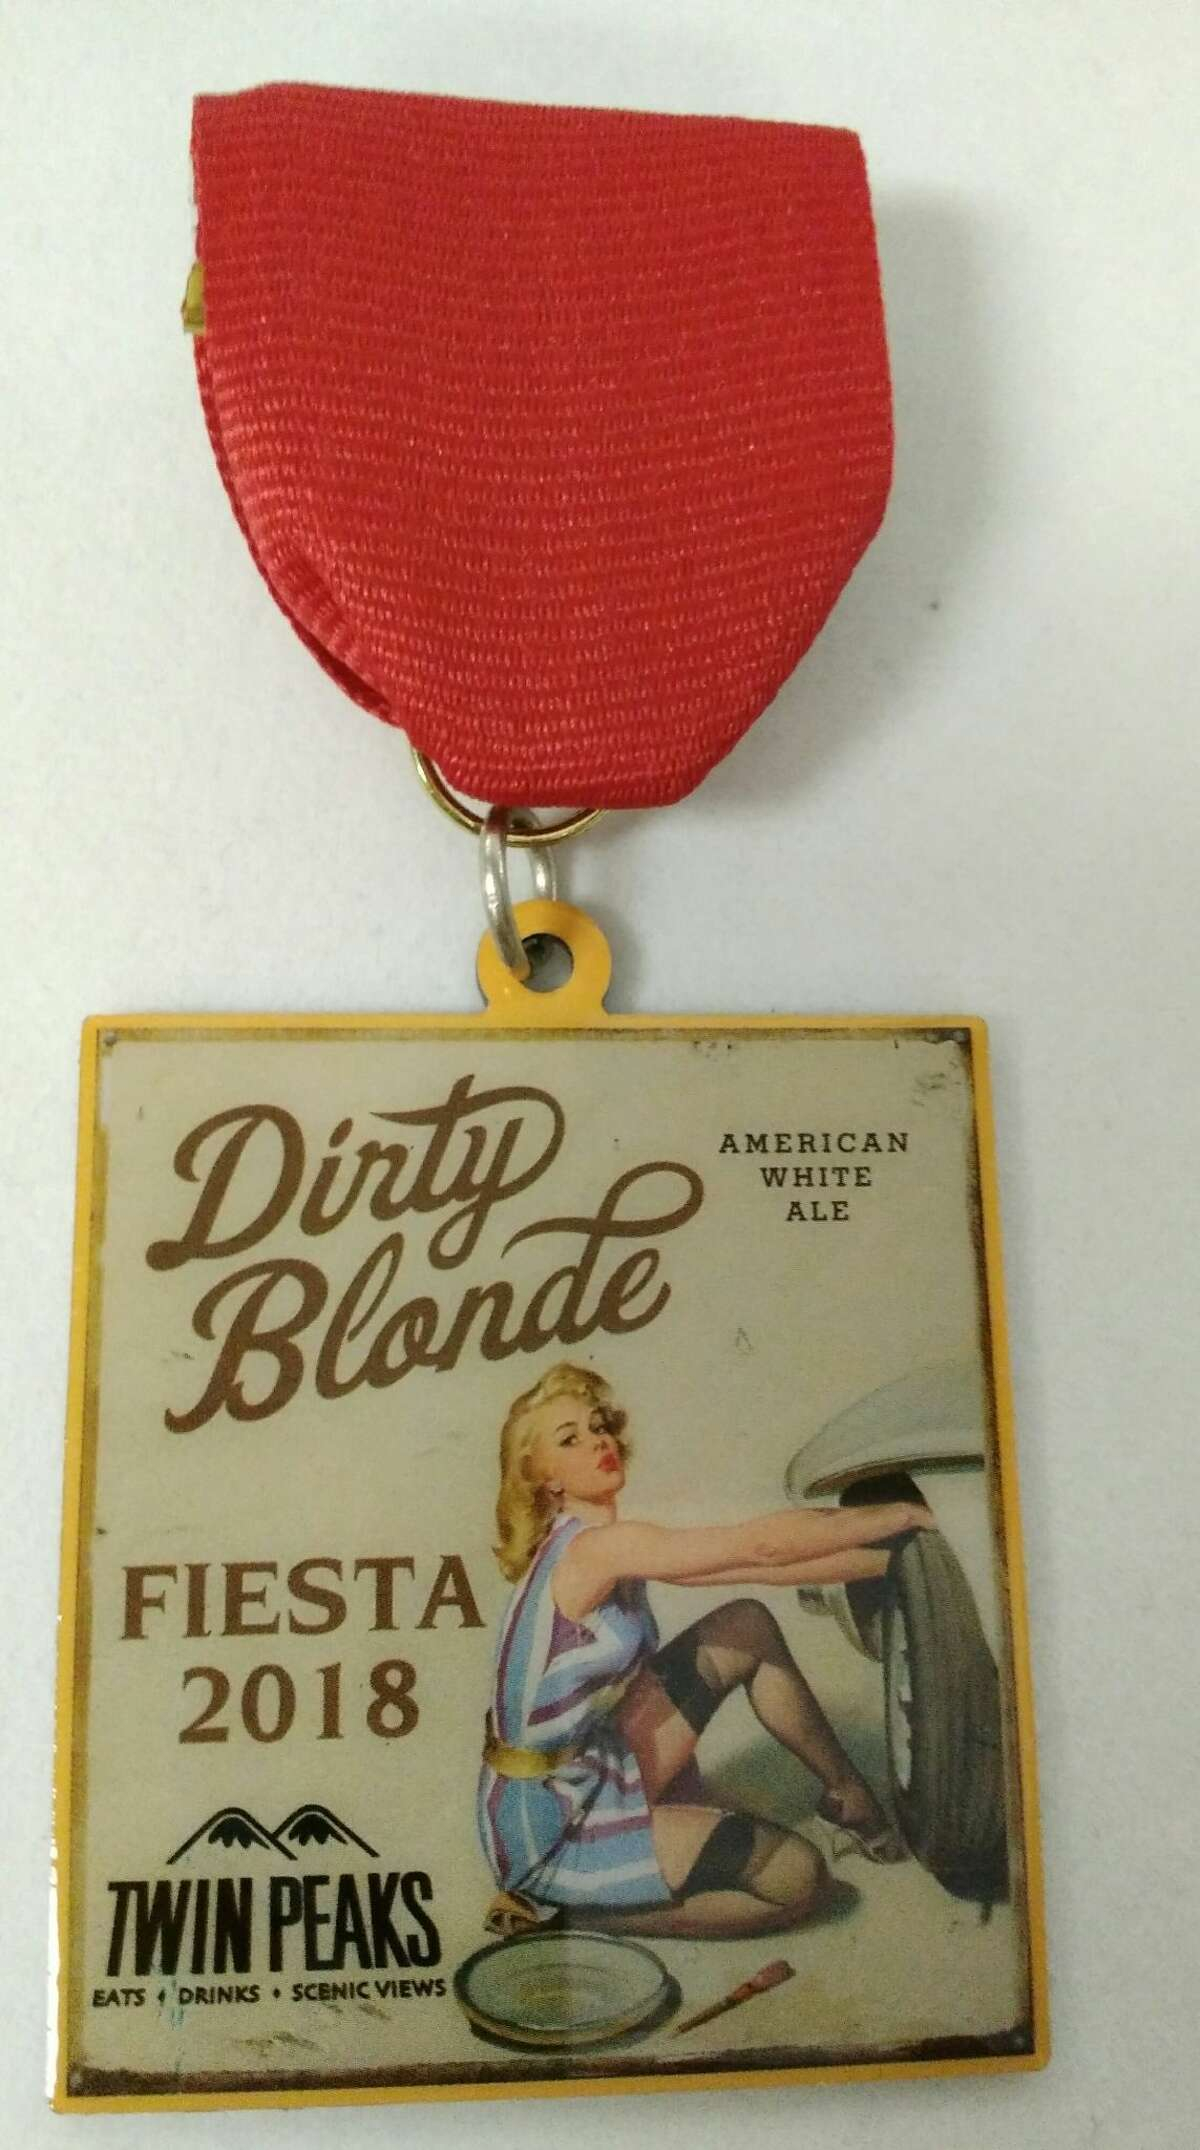 Twins Peaks Fiesta Medal, $10, available at area restaurants.